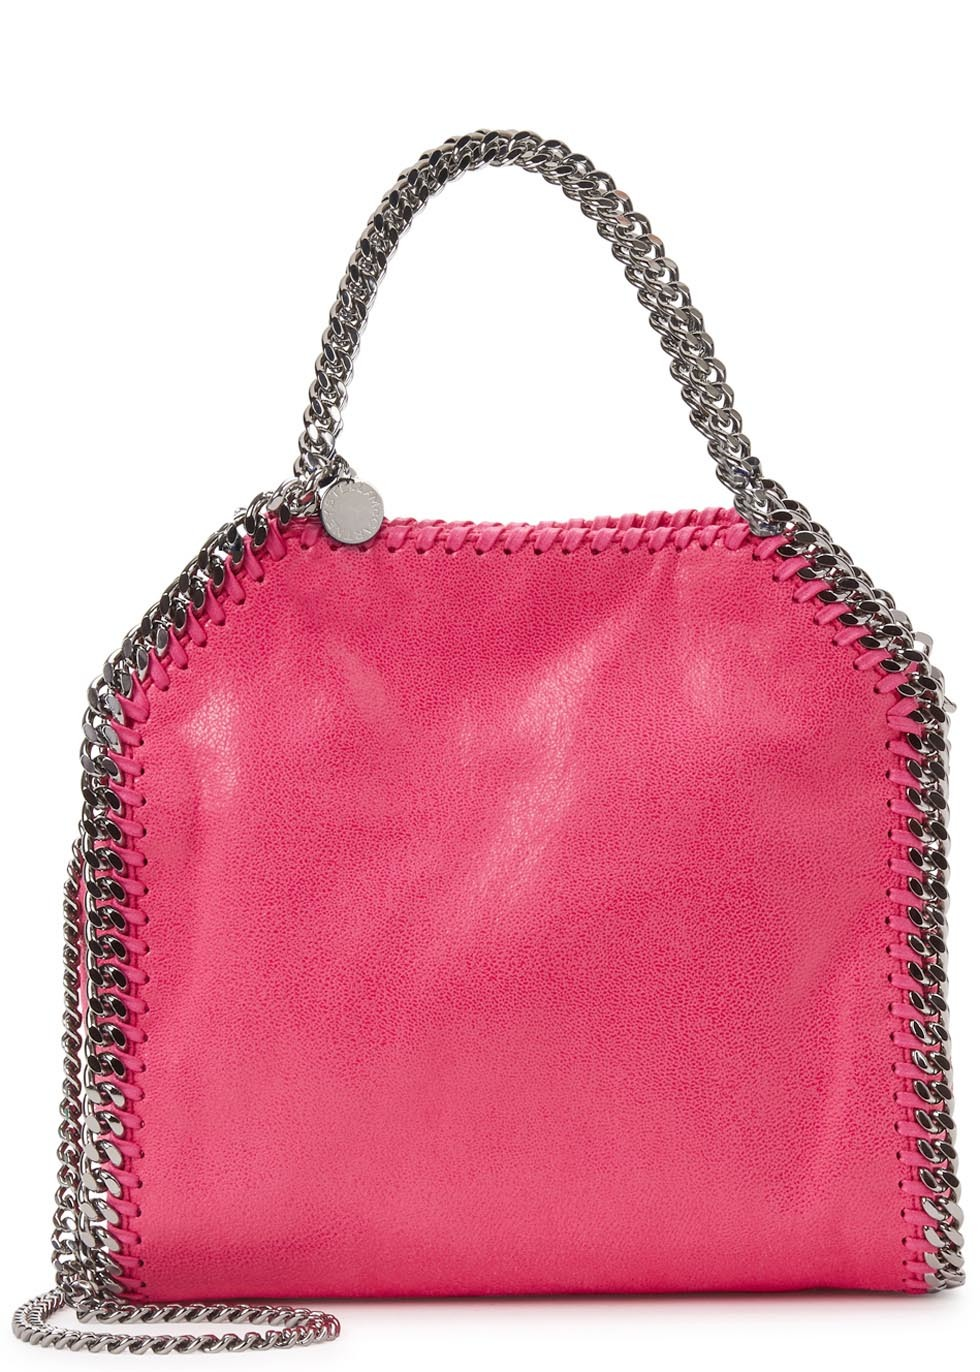 Falabella Mini Pink Faux Suede Tote - predominant colour: hot pink; secondary colour: silver; occasions: casual, creative work; type of pattern: standard; style: tote; length: handle; size: standard; material: faux leather; pattern: plain; finish: plain; embellishment: chain/metal; season: s/s 2016; wardrobe: highlight